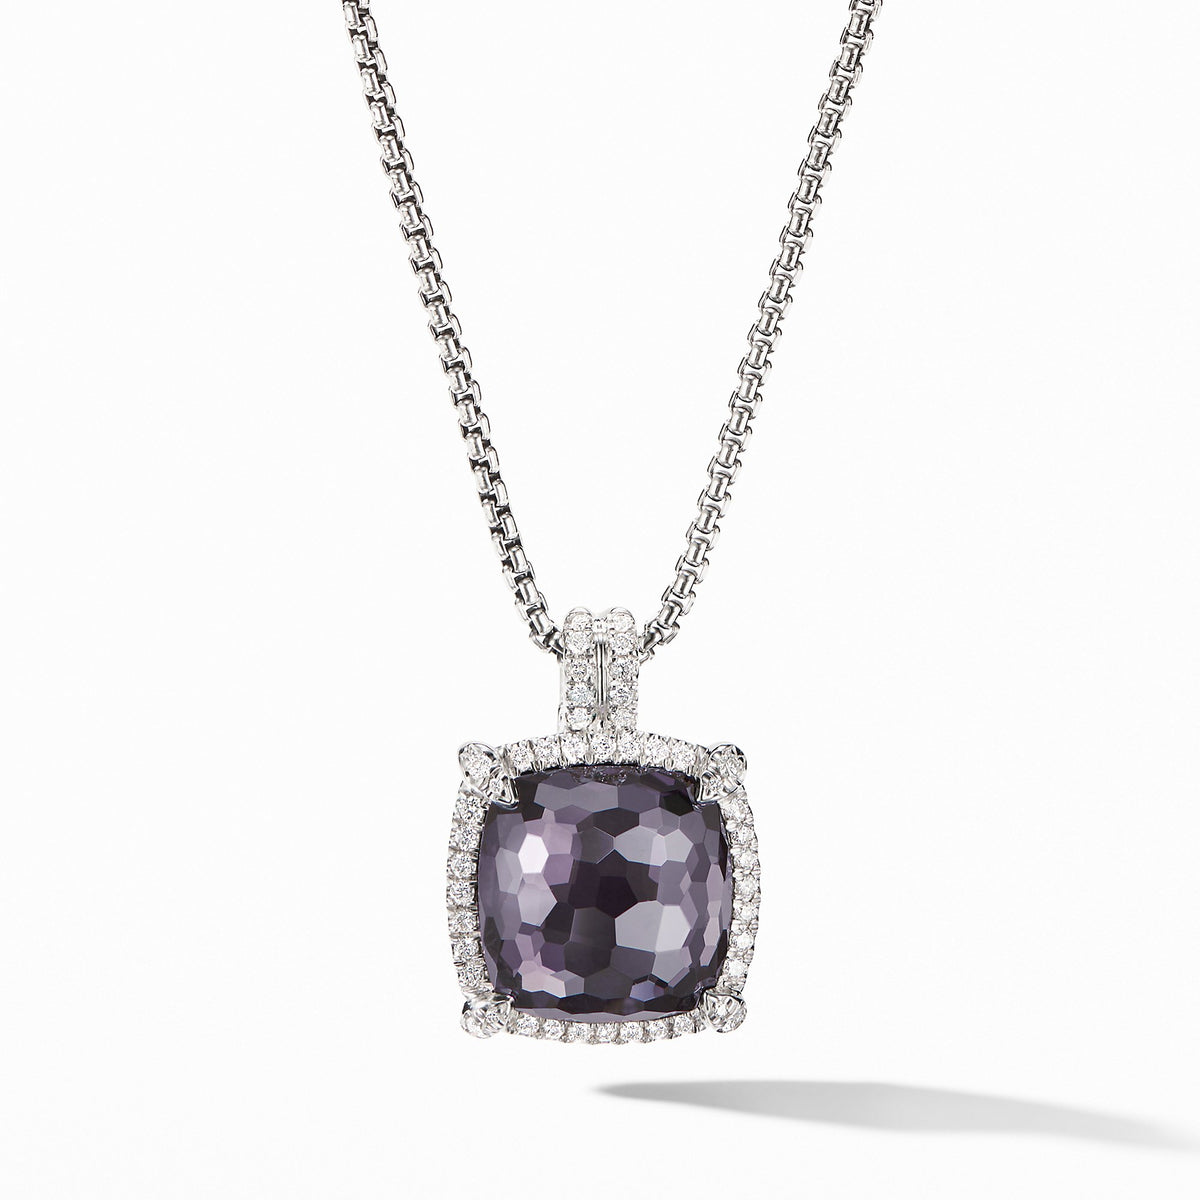 Chatelaine Pave Bezel Pendant Necklace with Black Orchid